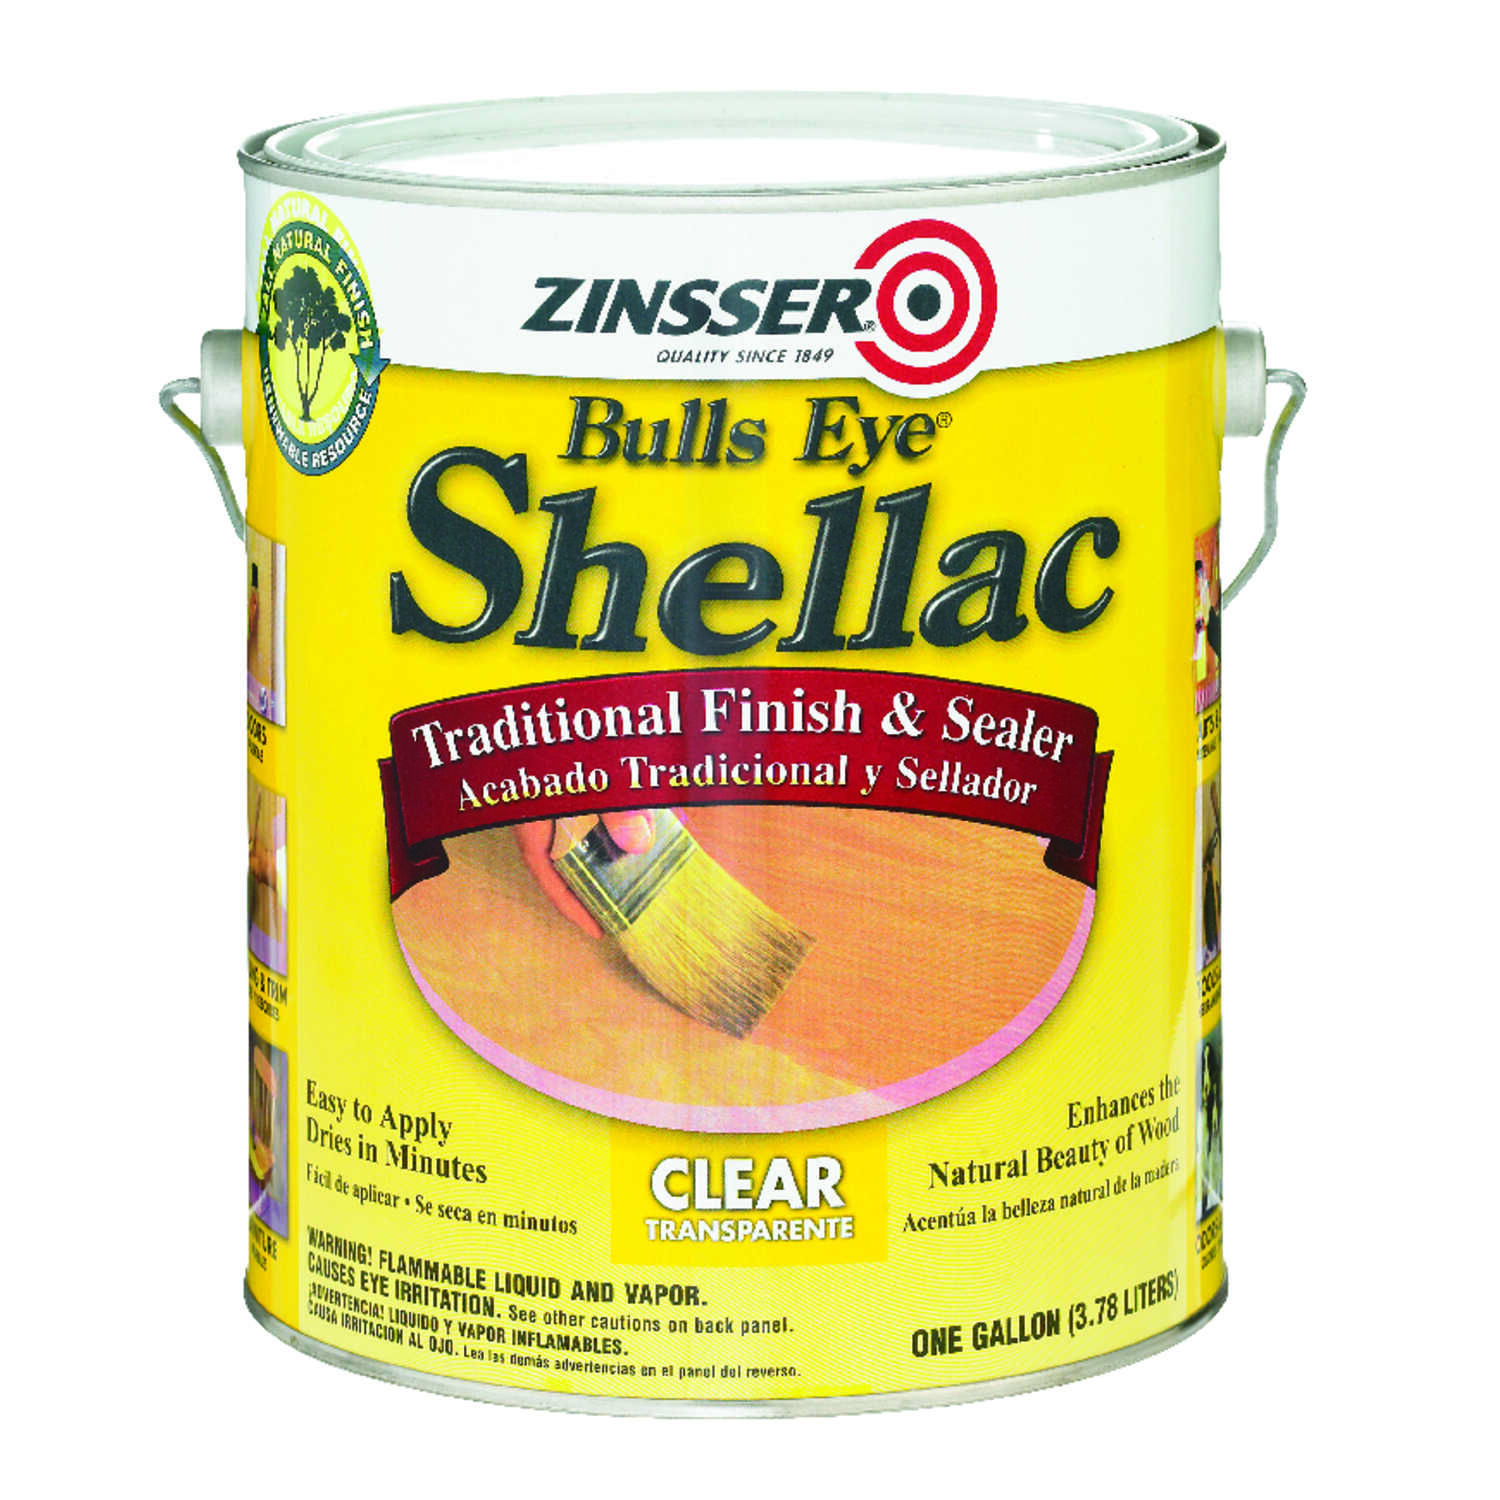 Zinsser  Bulls Eye Shellac  Clear  Shellac  1 gal. Finish and Sealer